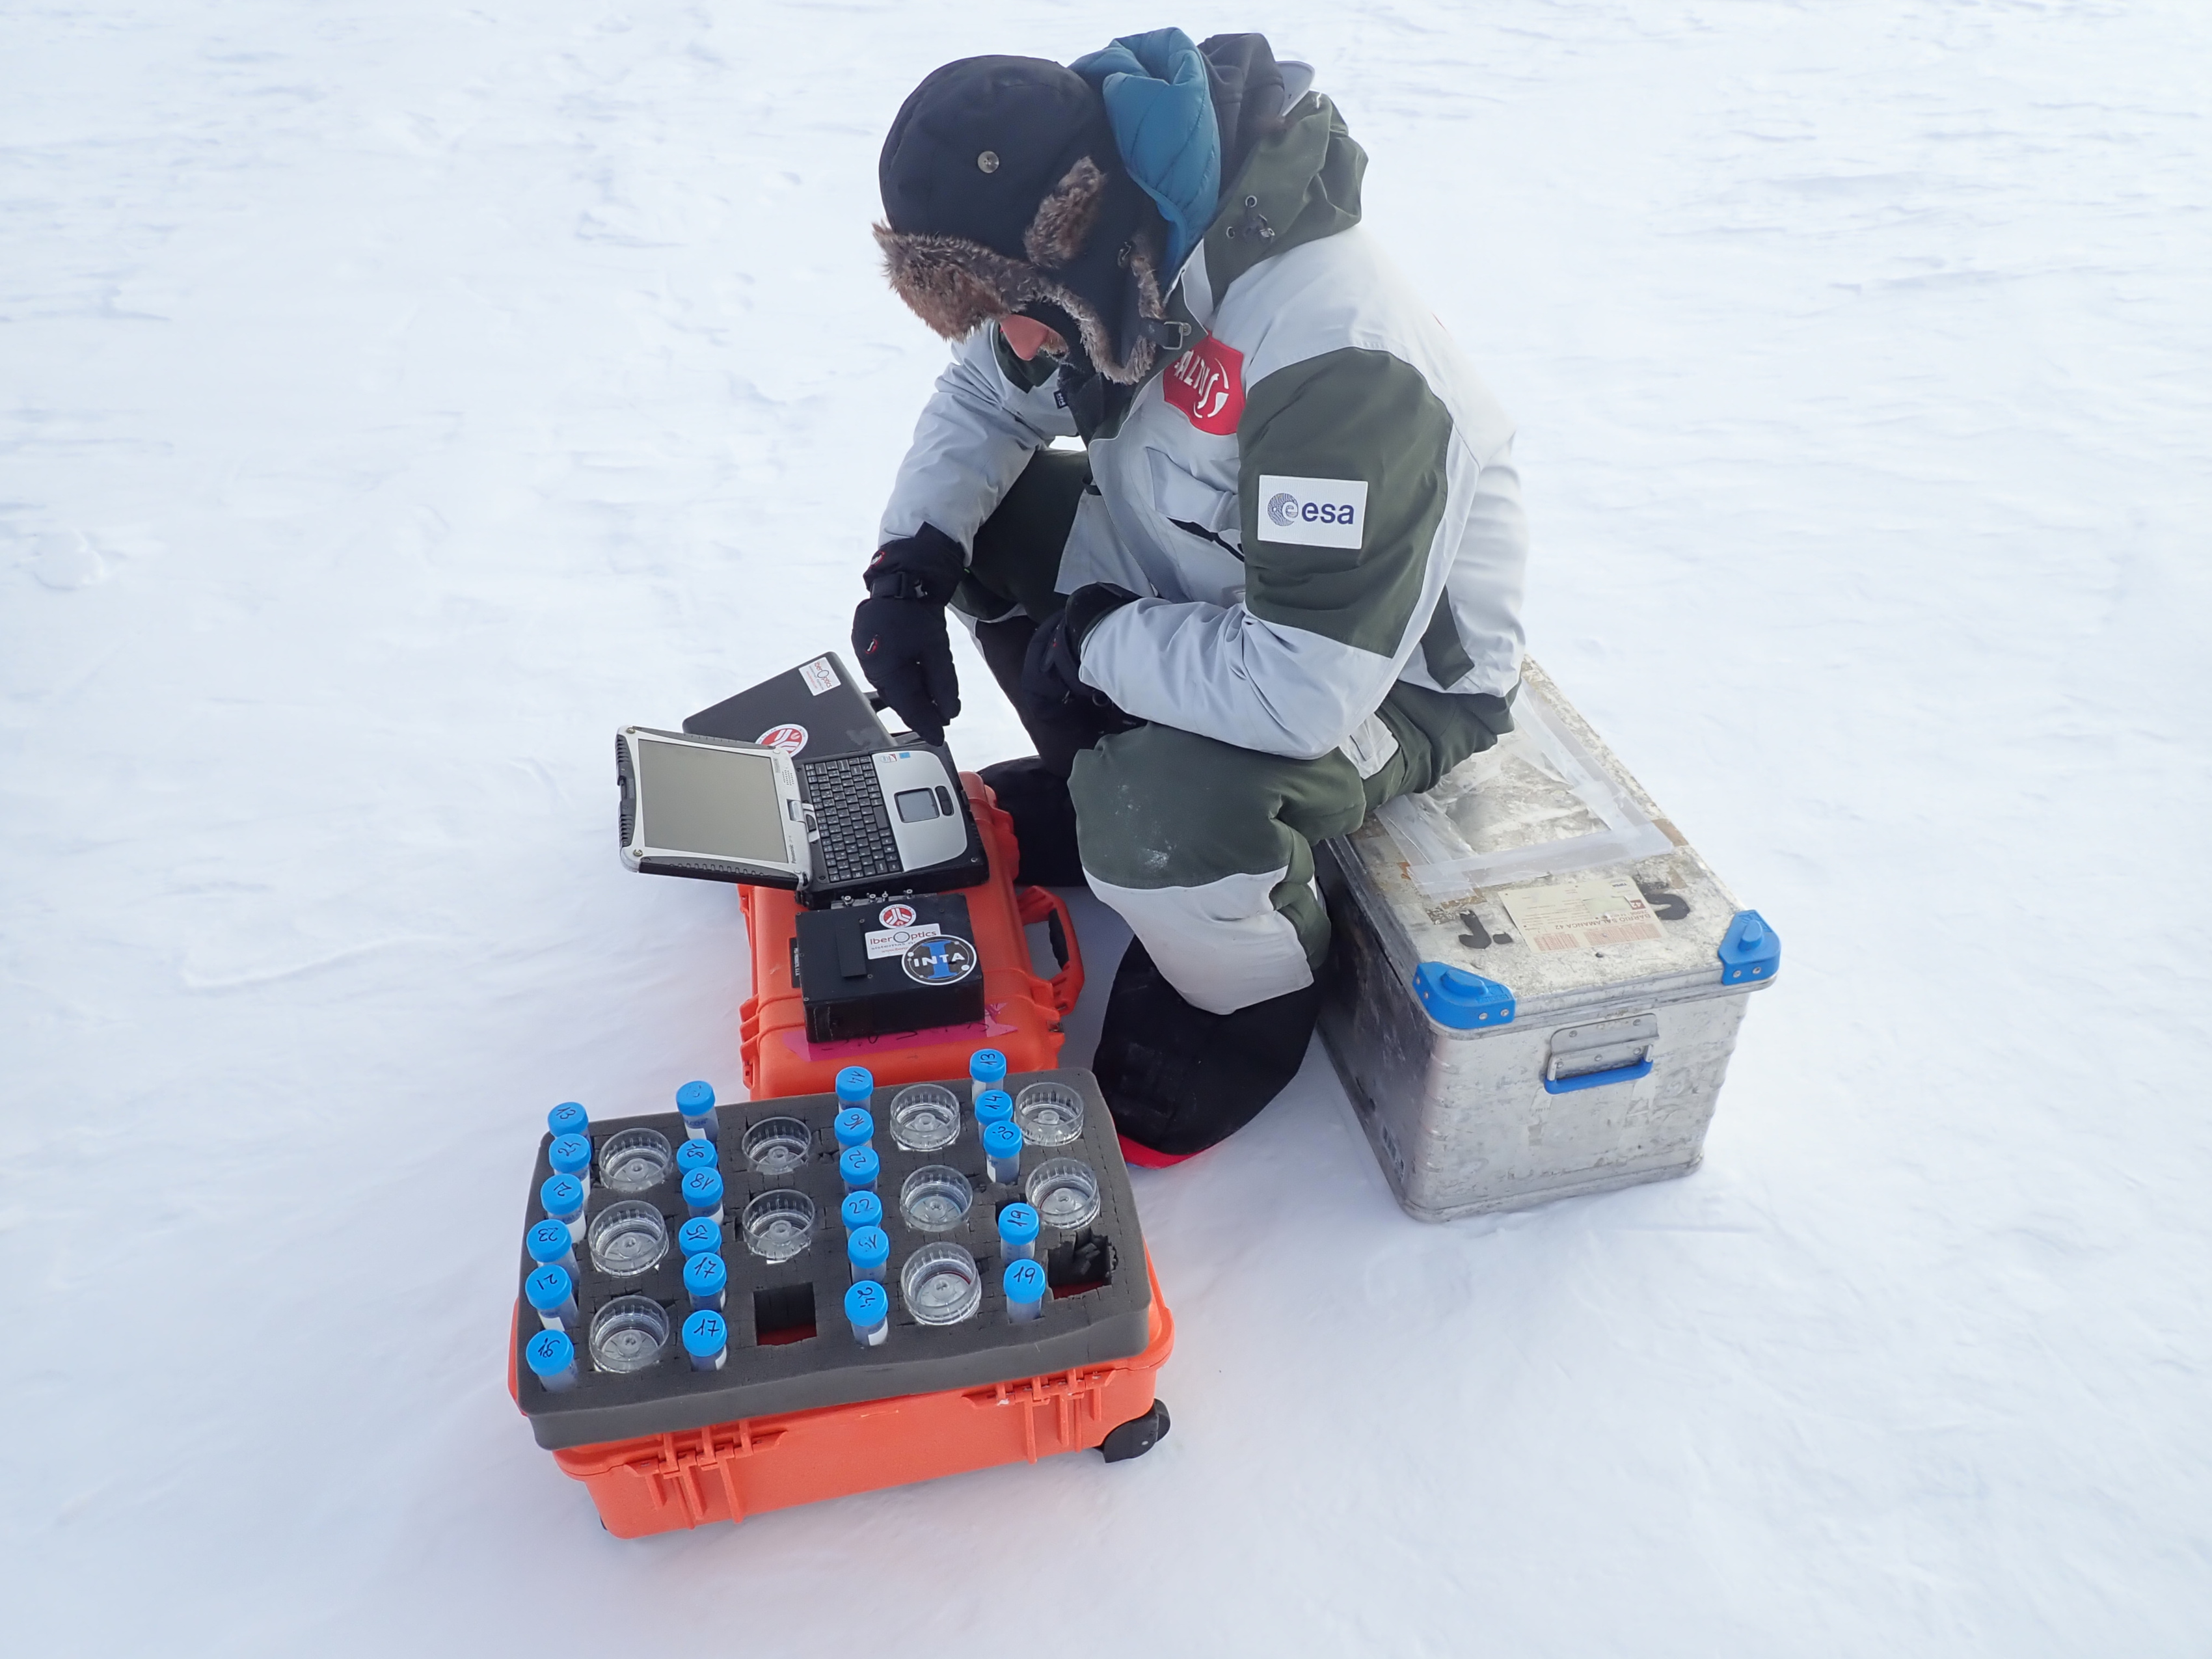 Analyzing samples in Antarctica